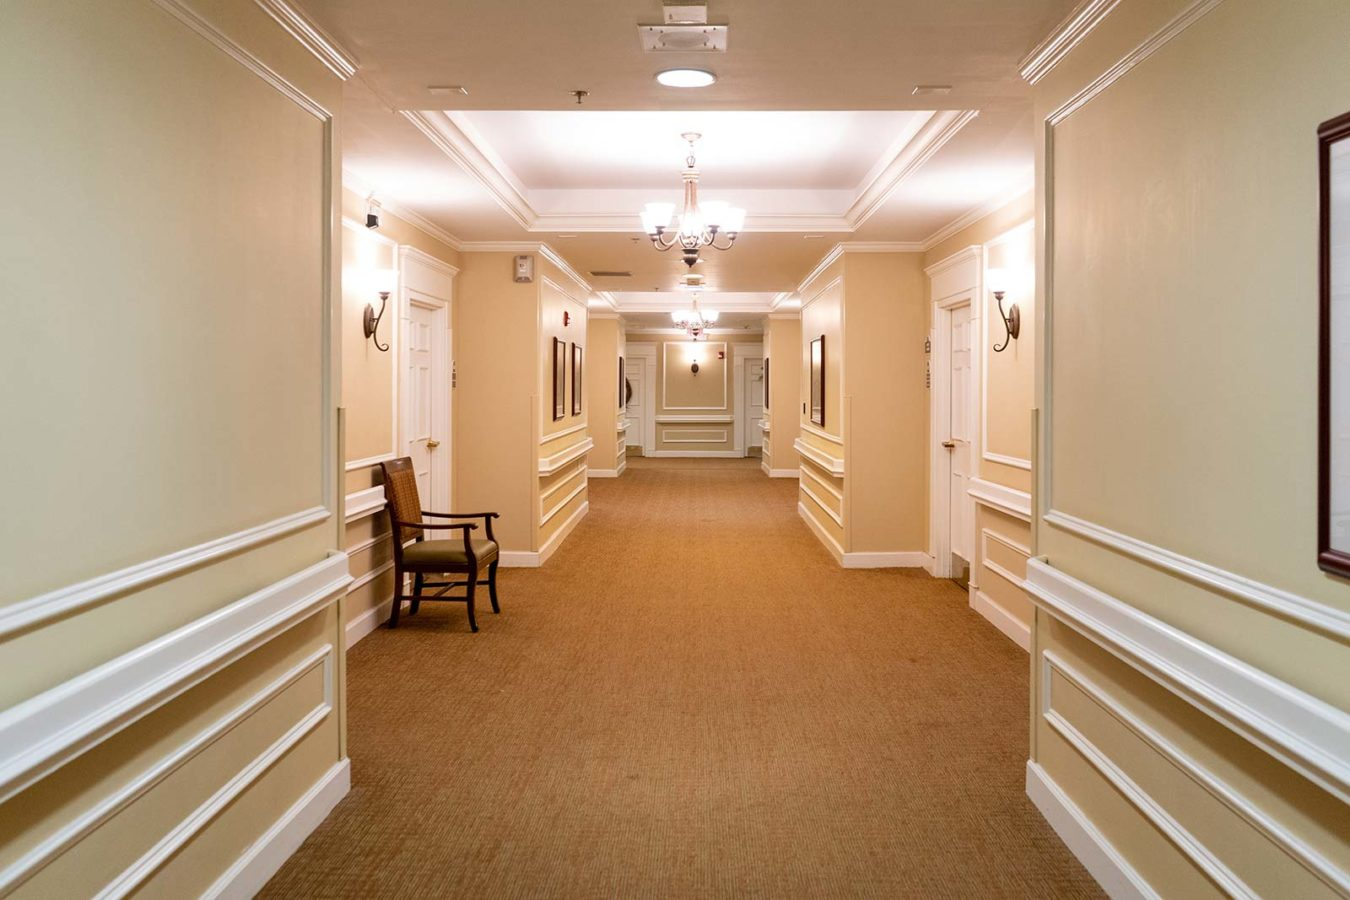 Memory care hallway at The Colonnade at Northdale in Tampa, FL